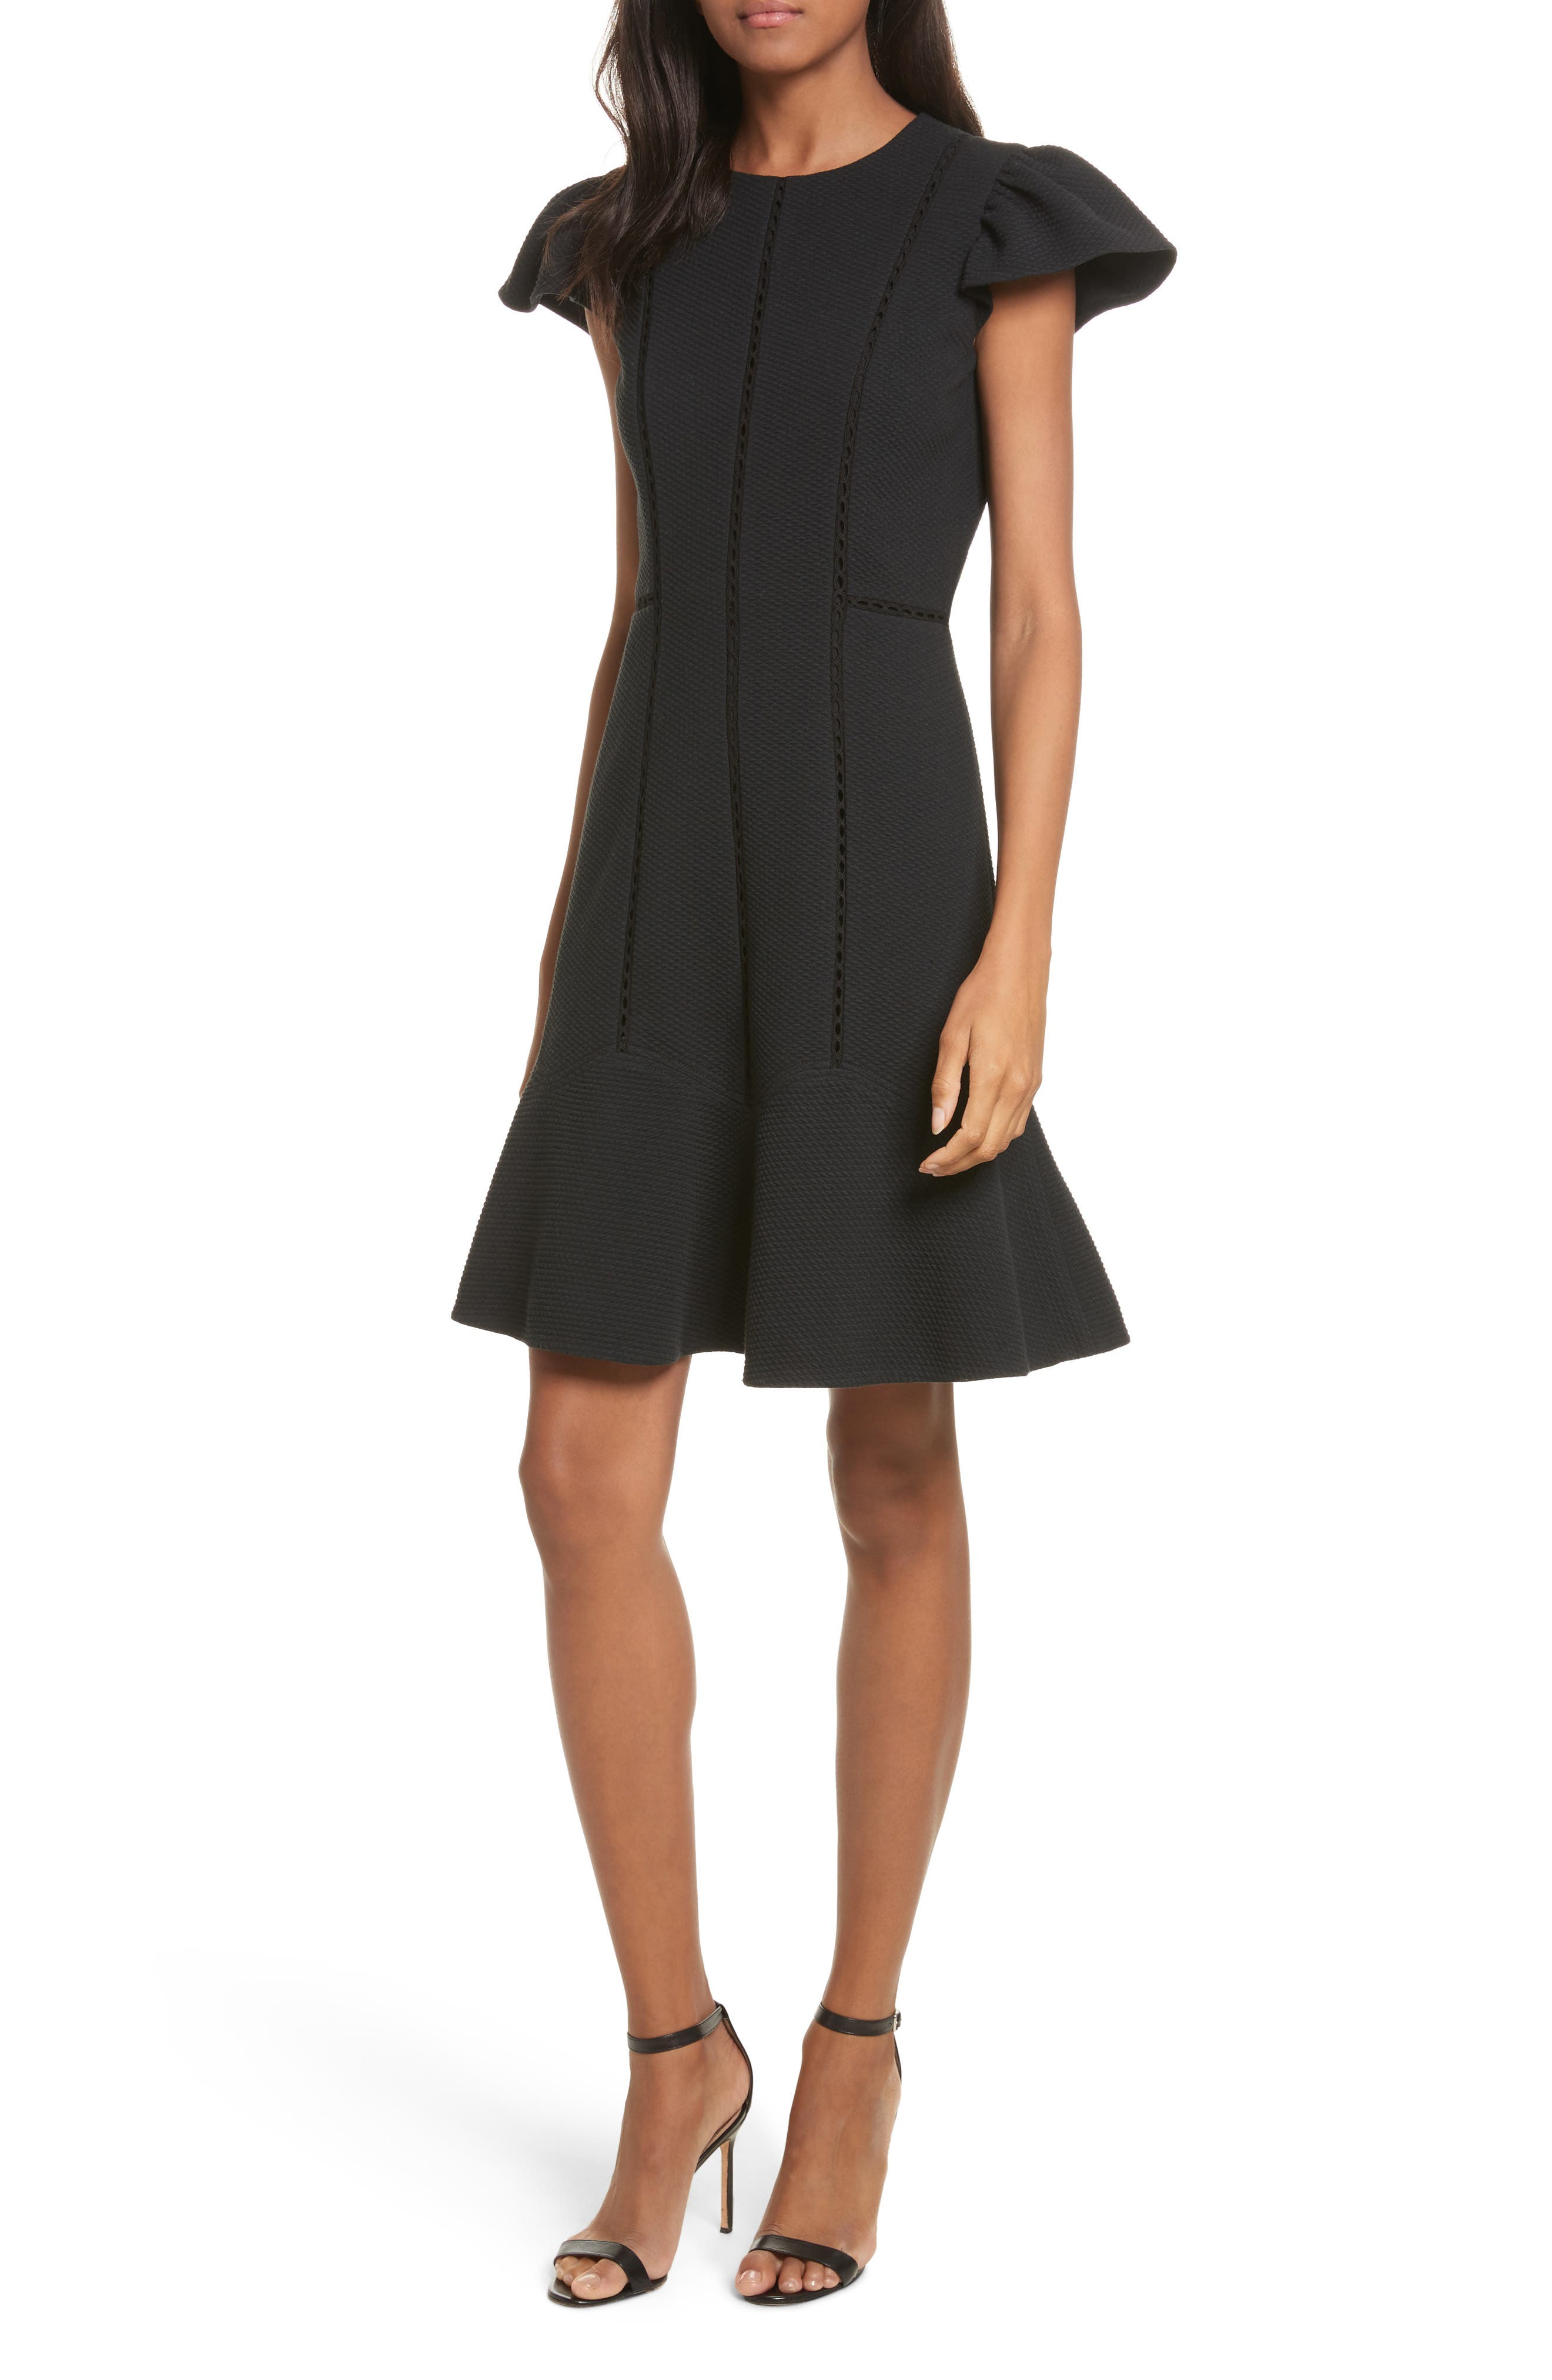 Main Image - Rebecca Taylor Textured Stretch Fit & Flare Dress